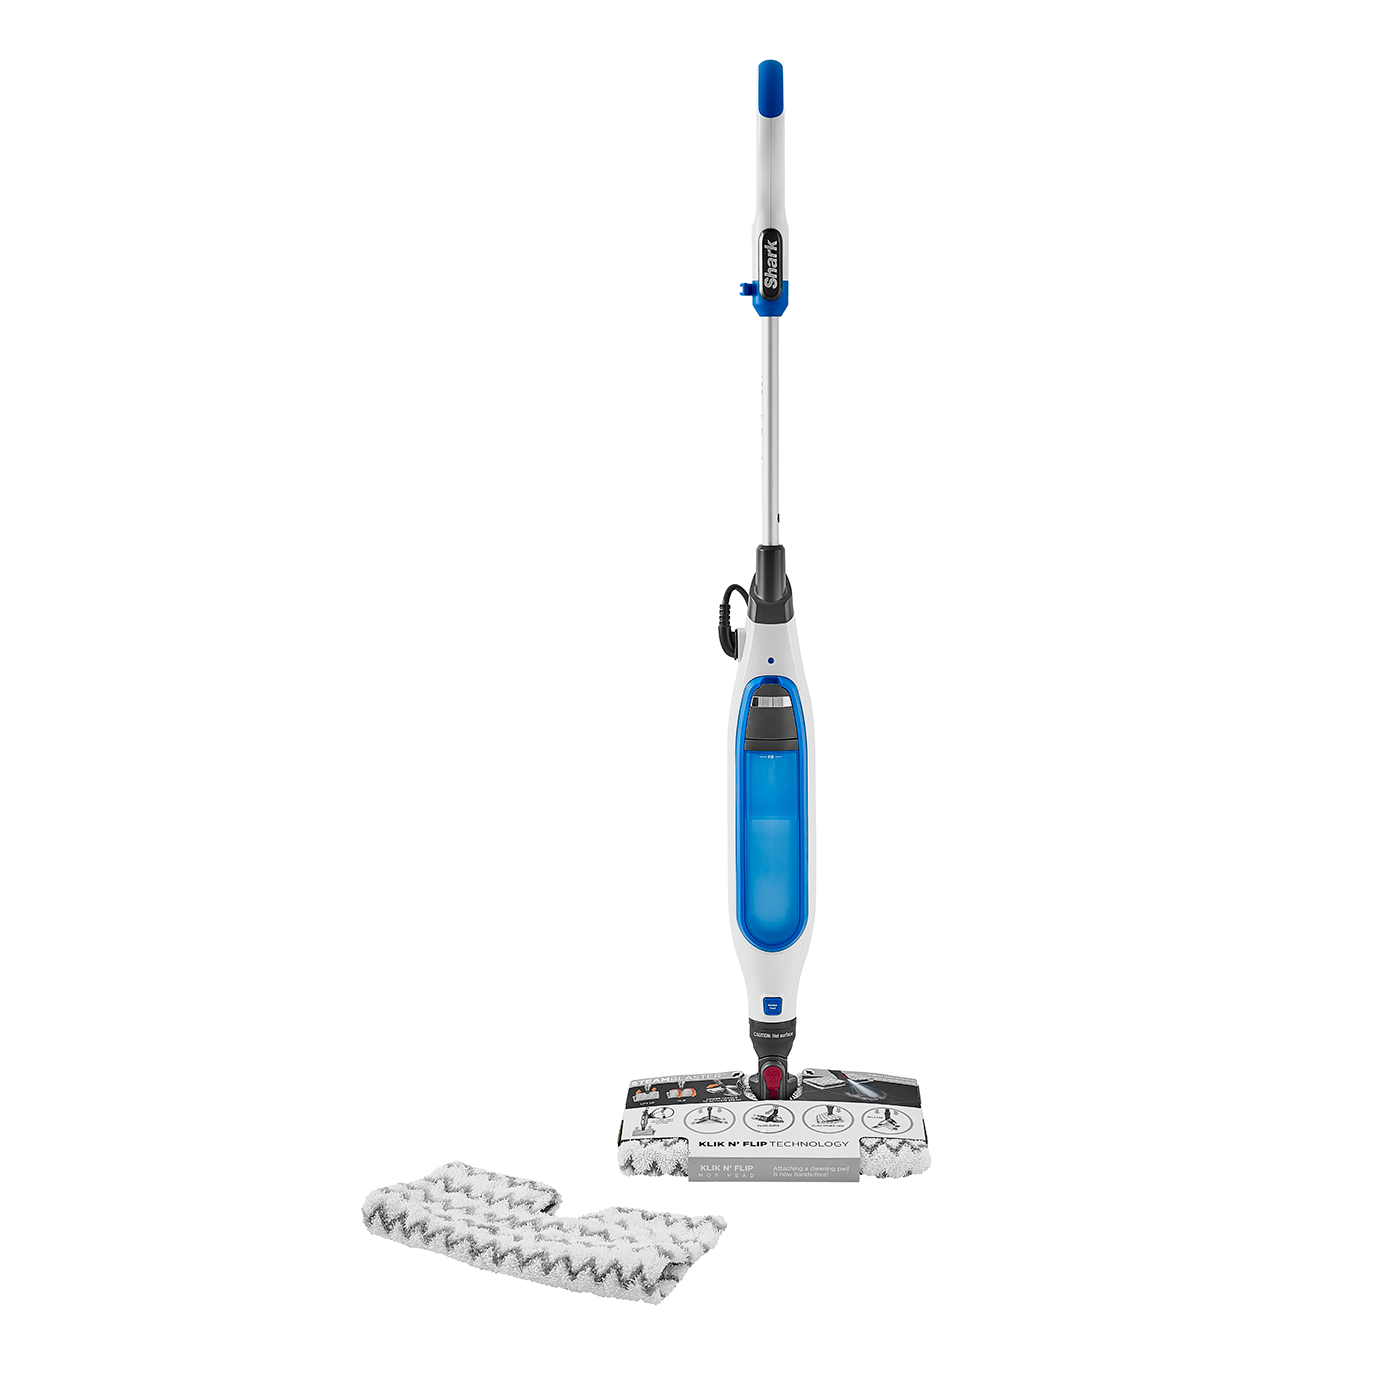 shark 2 in 1 vac then steam manual